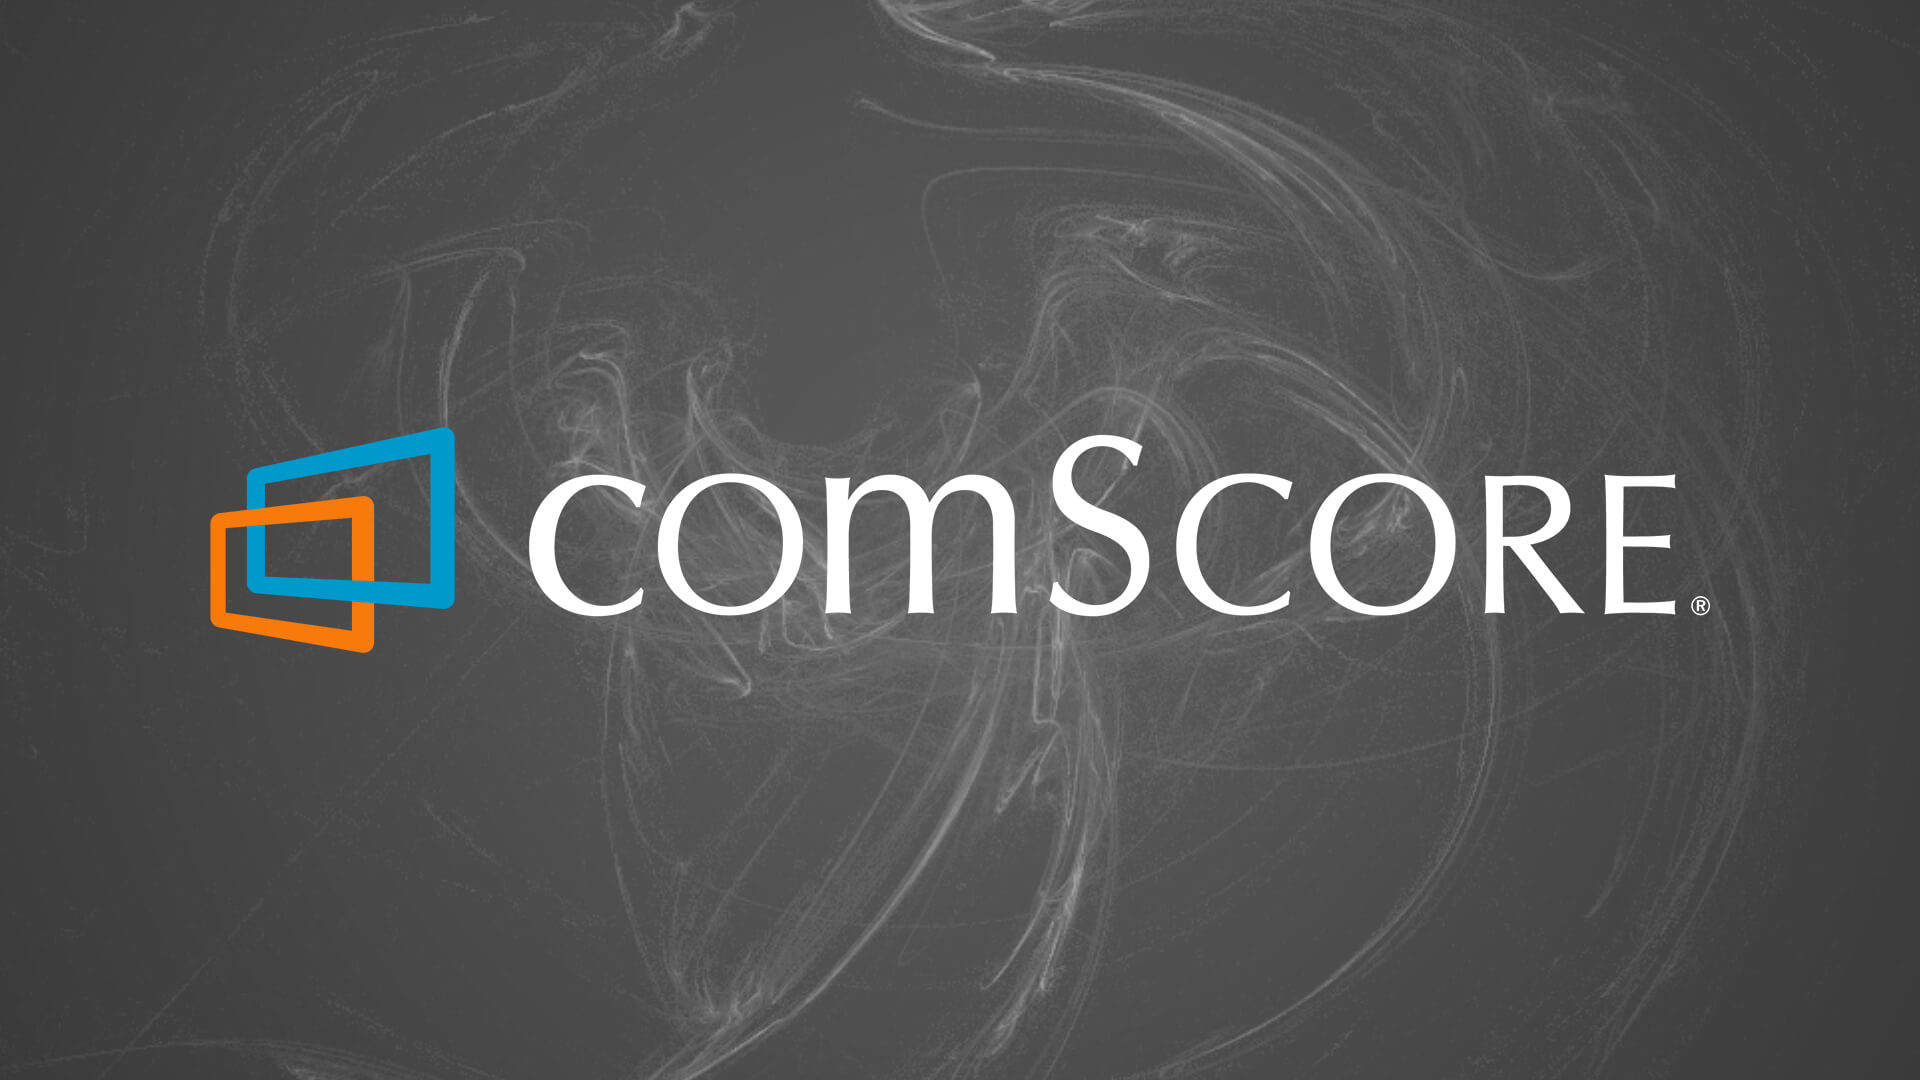 comScore sunsets its Compete PRO service and recommends SimilarWeb to its clients